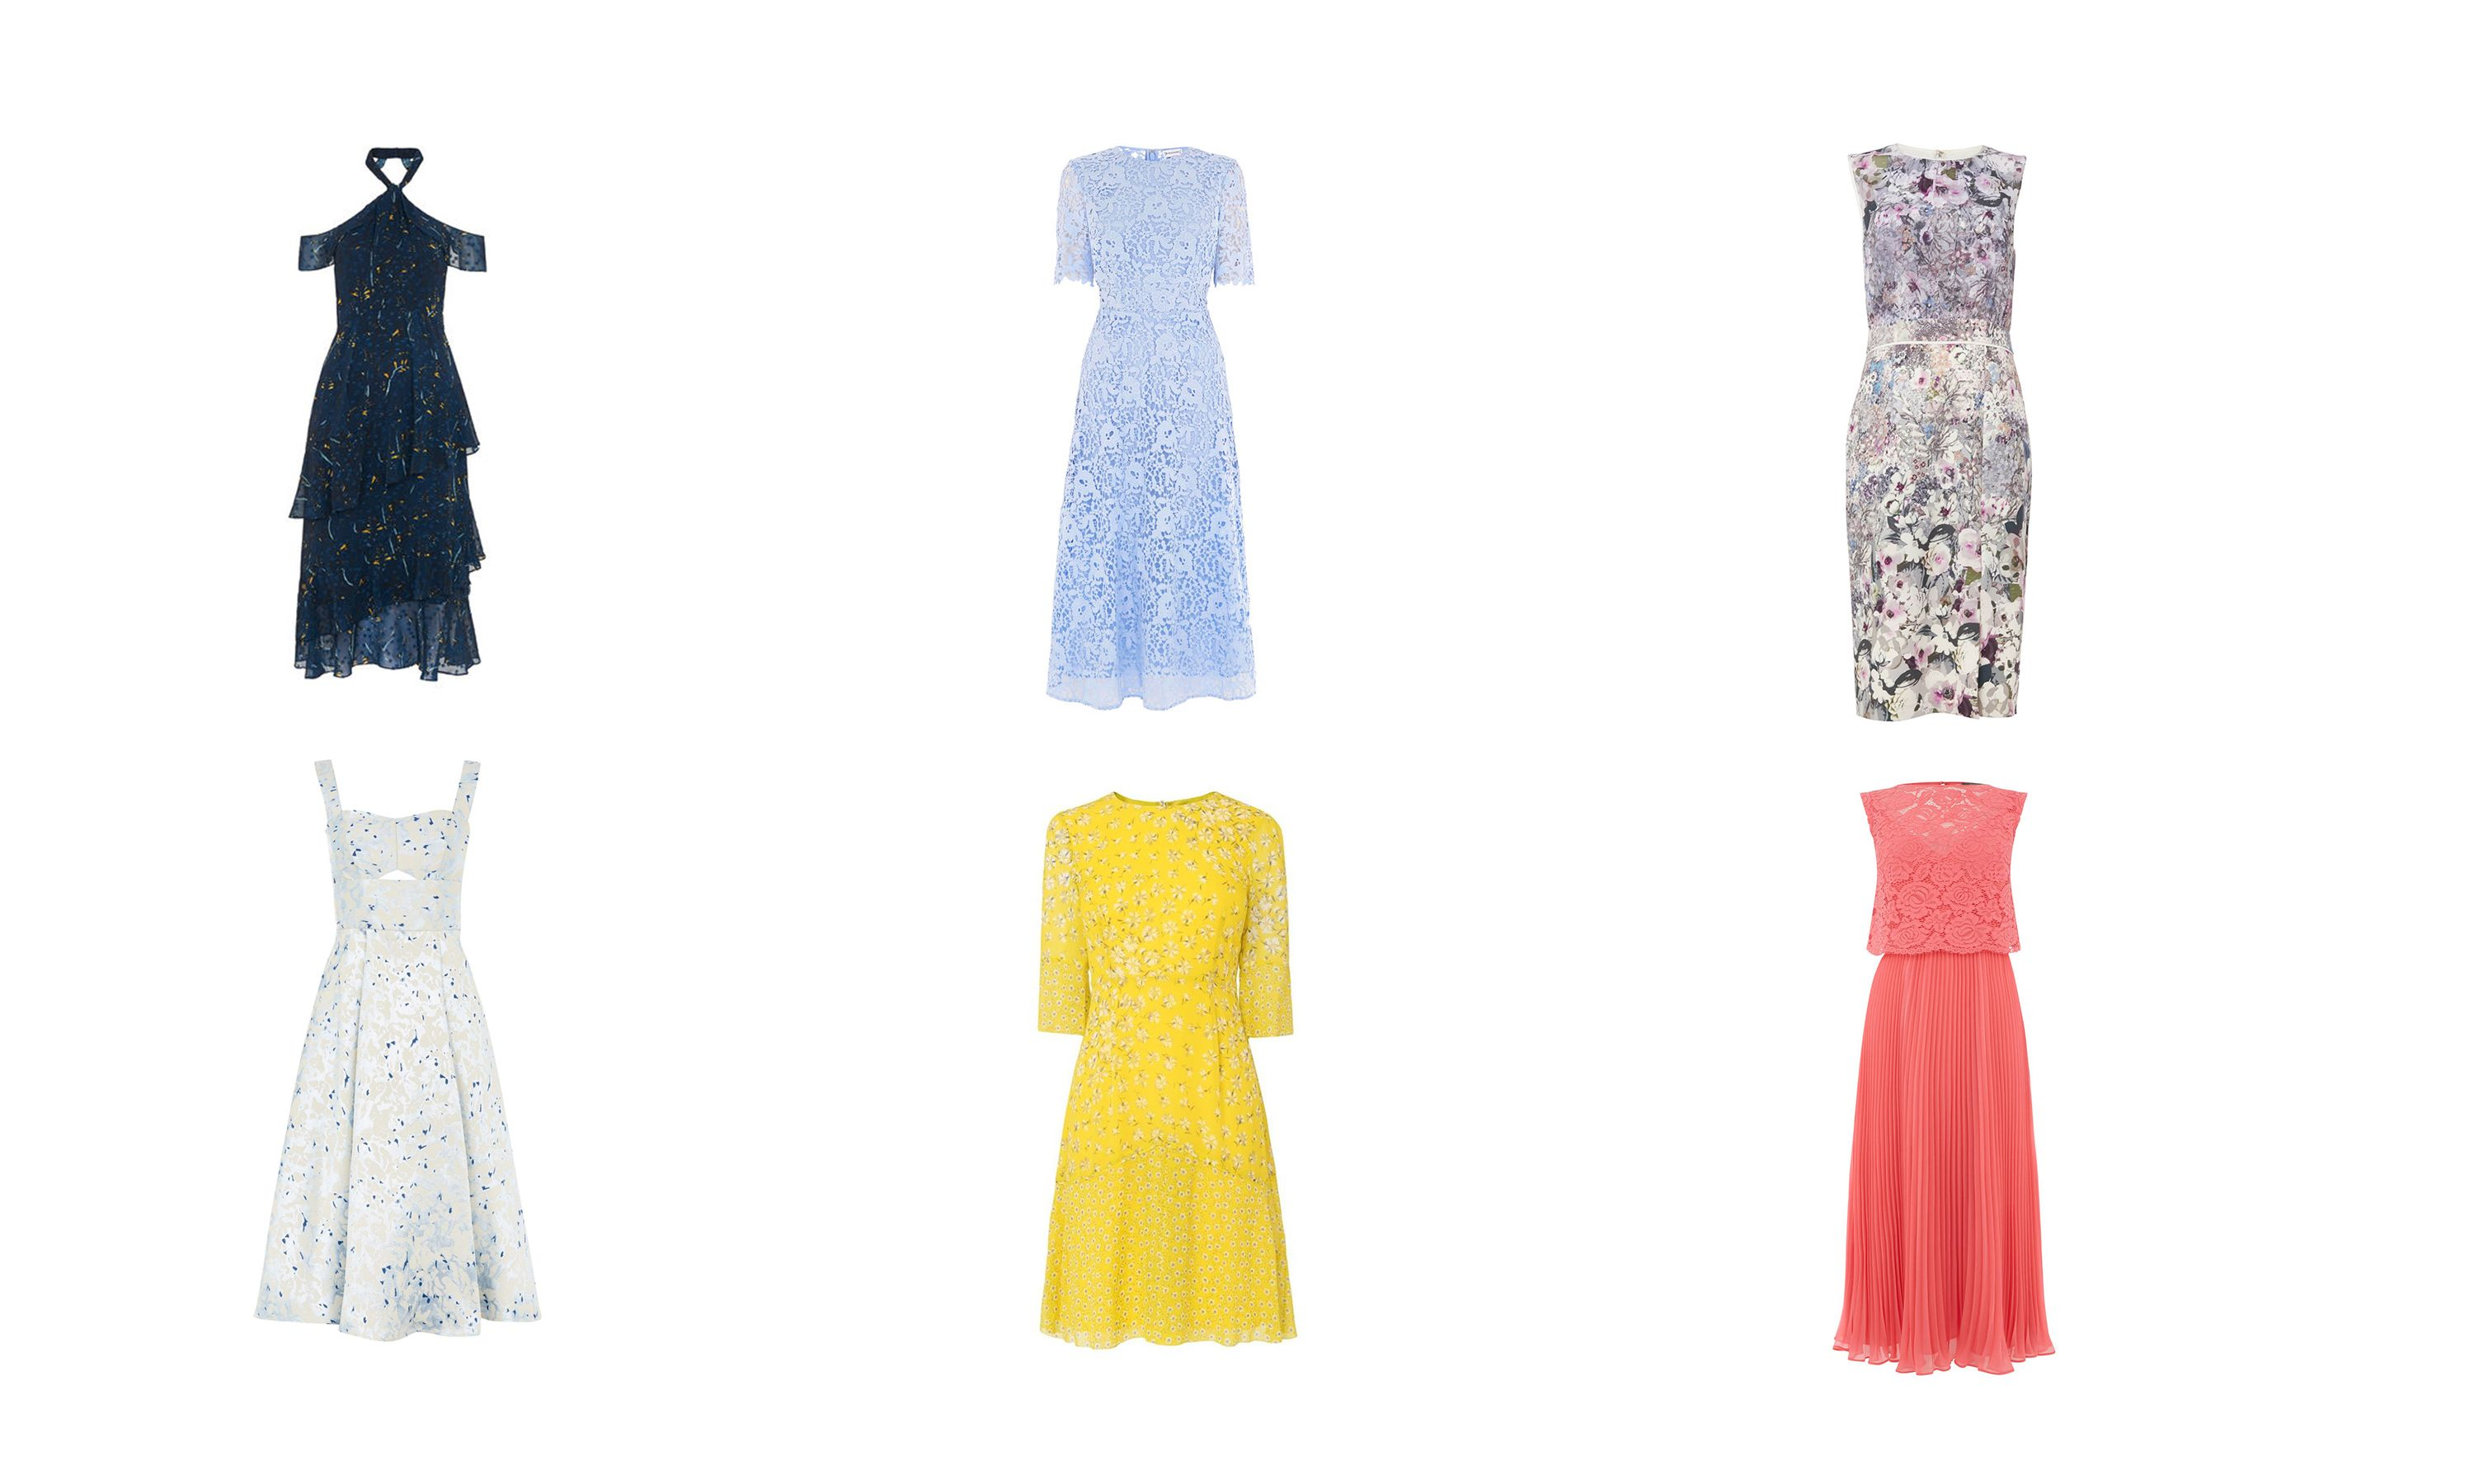 Best Wedding Guest Dresses For Summer